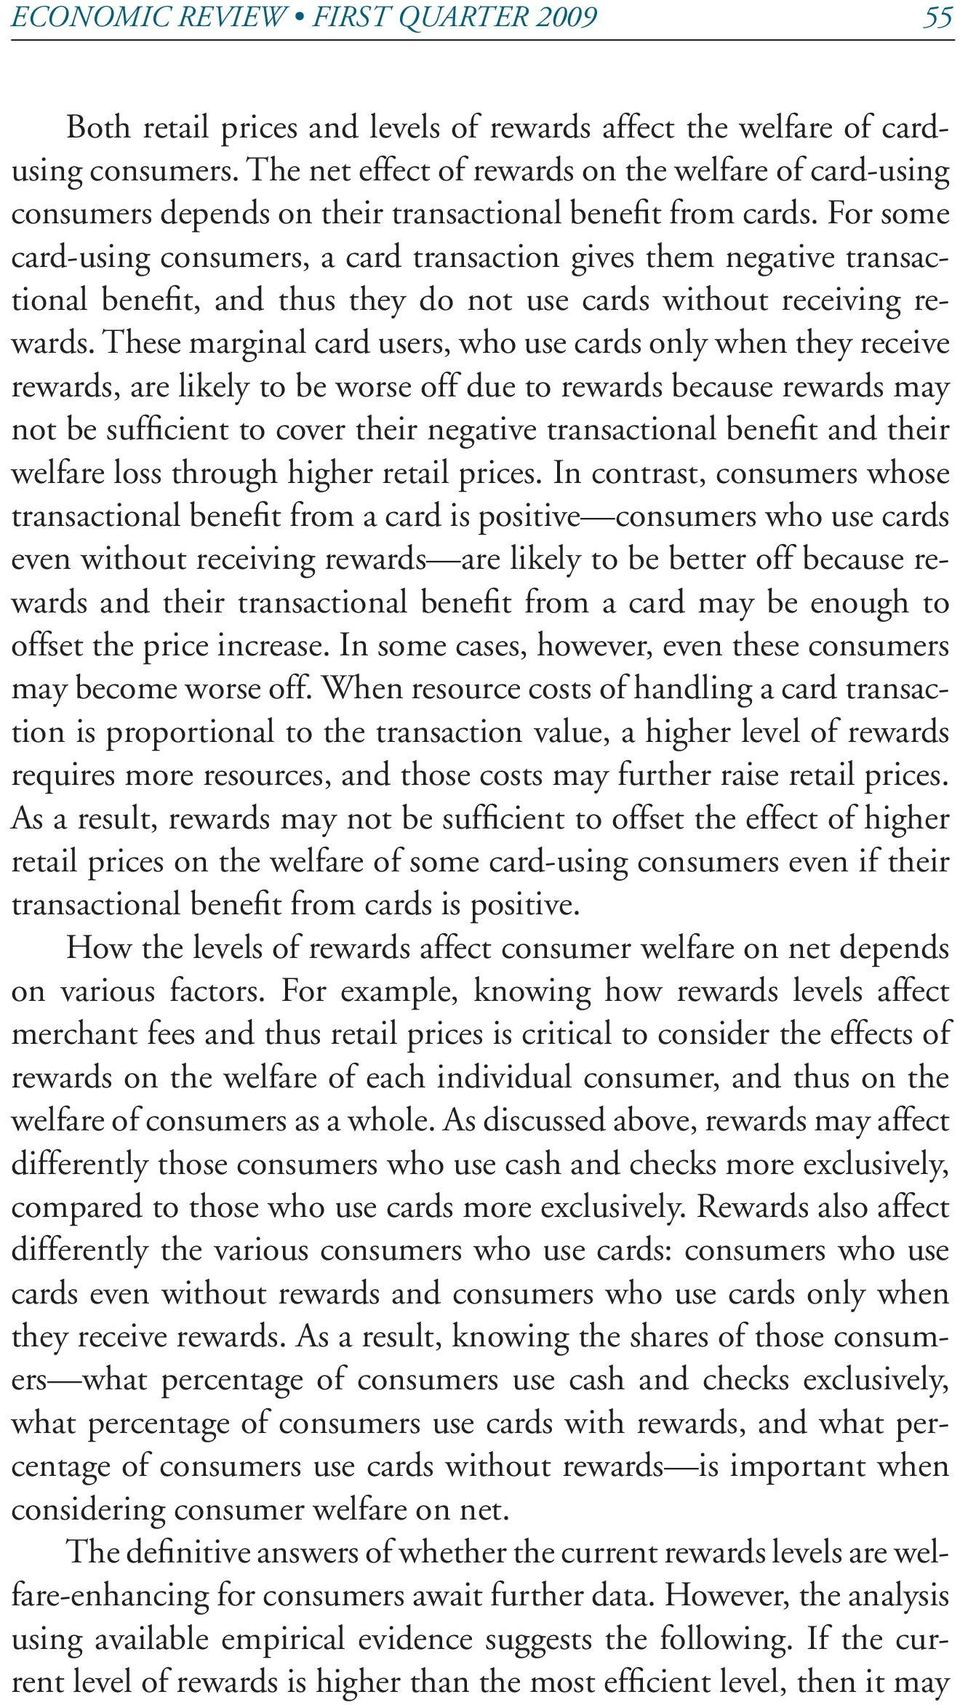 For some card-using consumers, a card transaction gives them negative transactional benefit, and thus they do not use cards without receiving rewards.